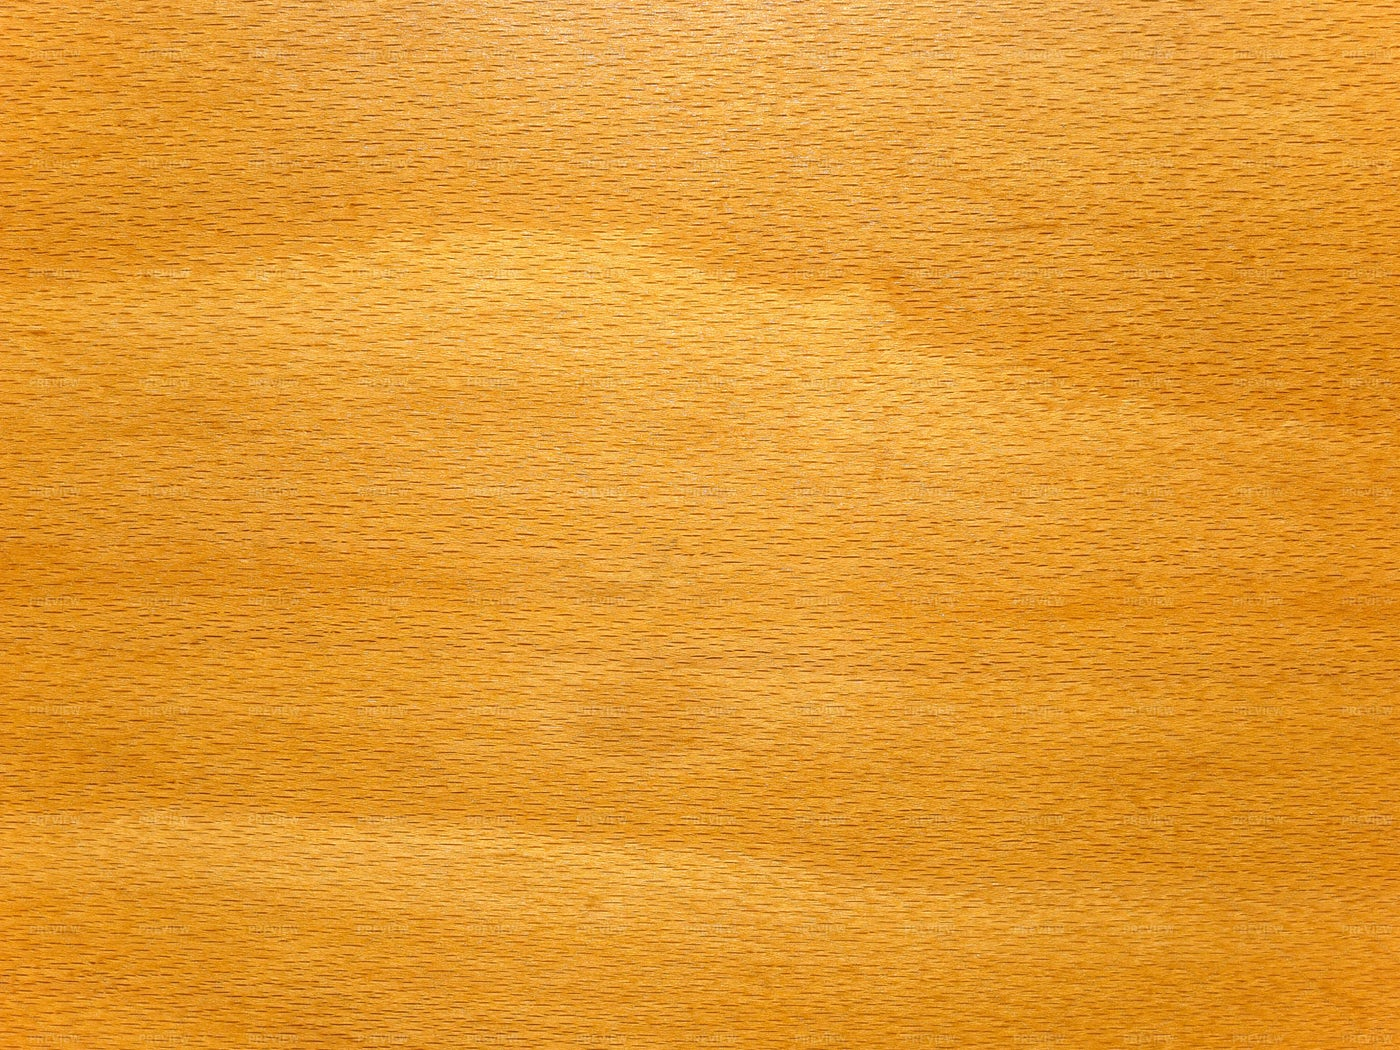 Brown Wood Background: Stock Photos